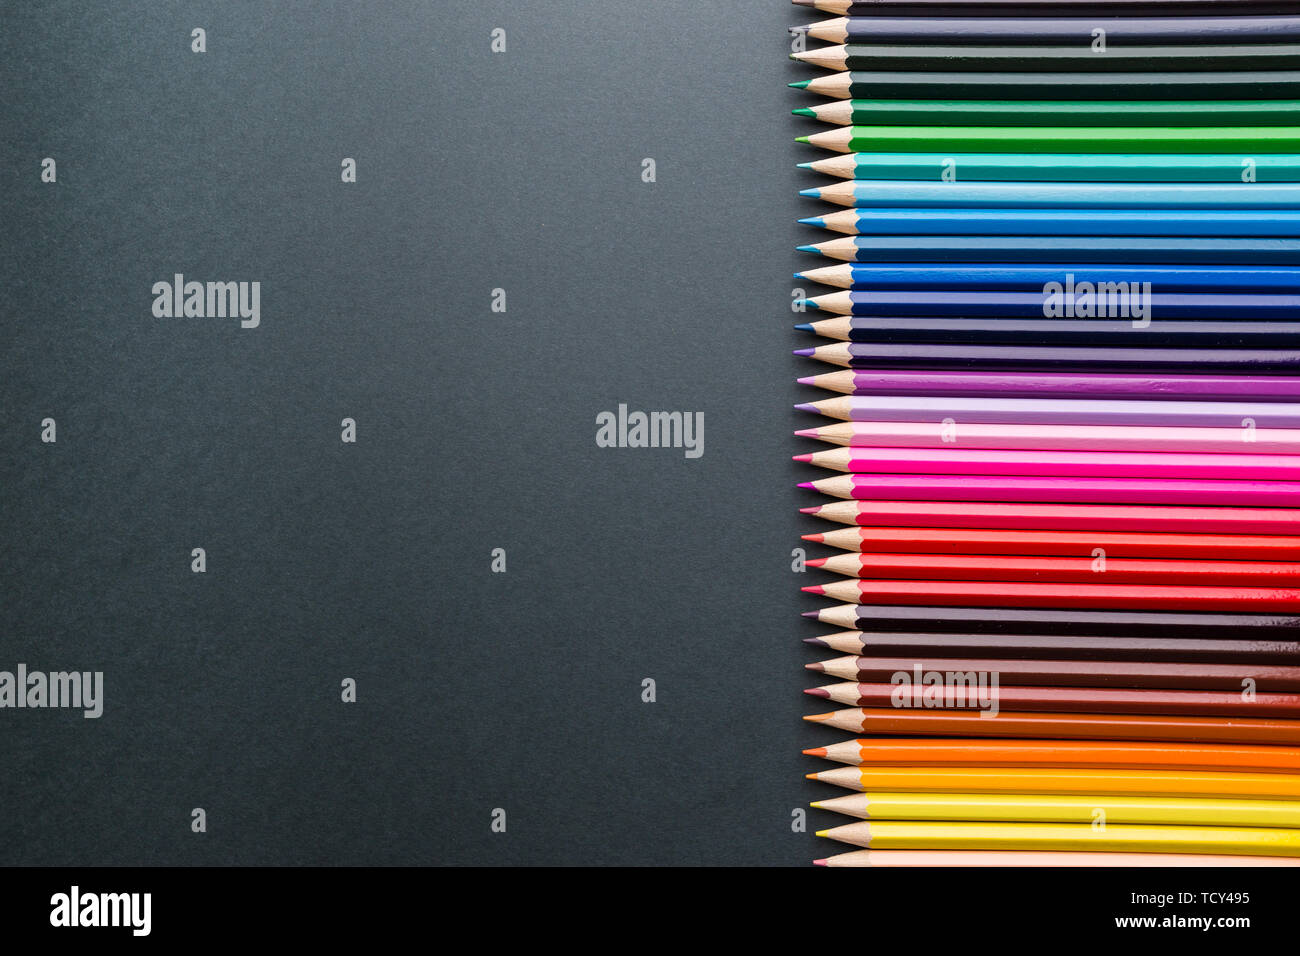 Pencils of various colors on a black background, top view with copy space, flat lay - Stock Image